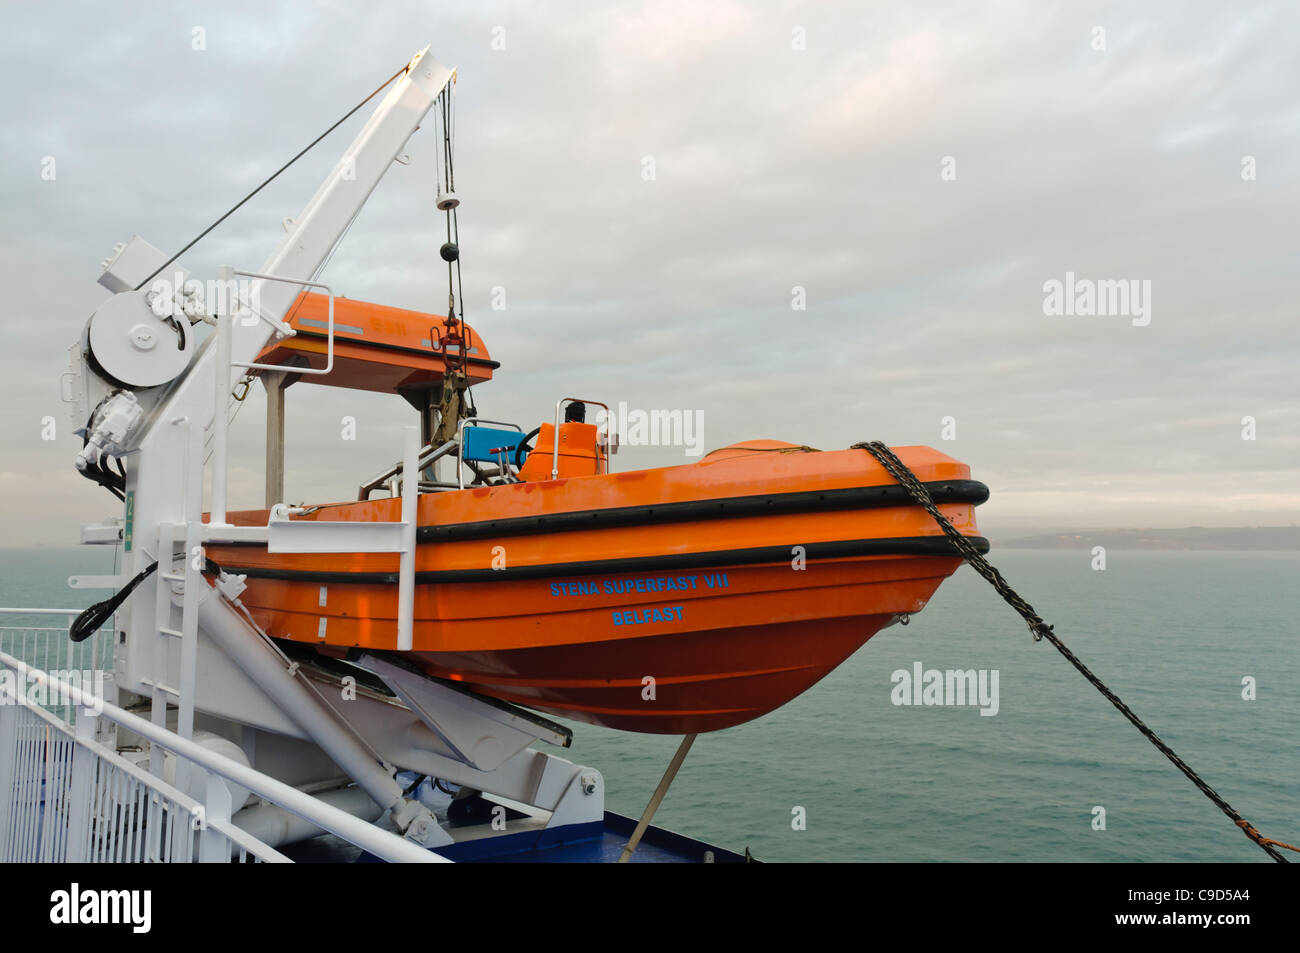 Rescue lifeboat suspended from a davit on board a large ship. Stock Photo